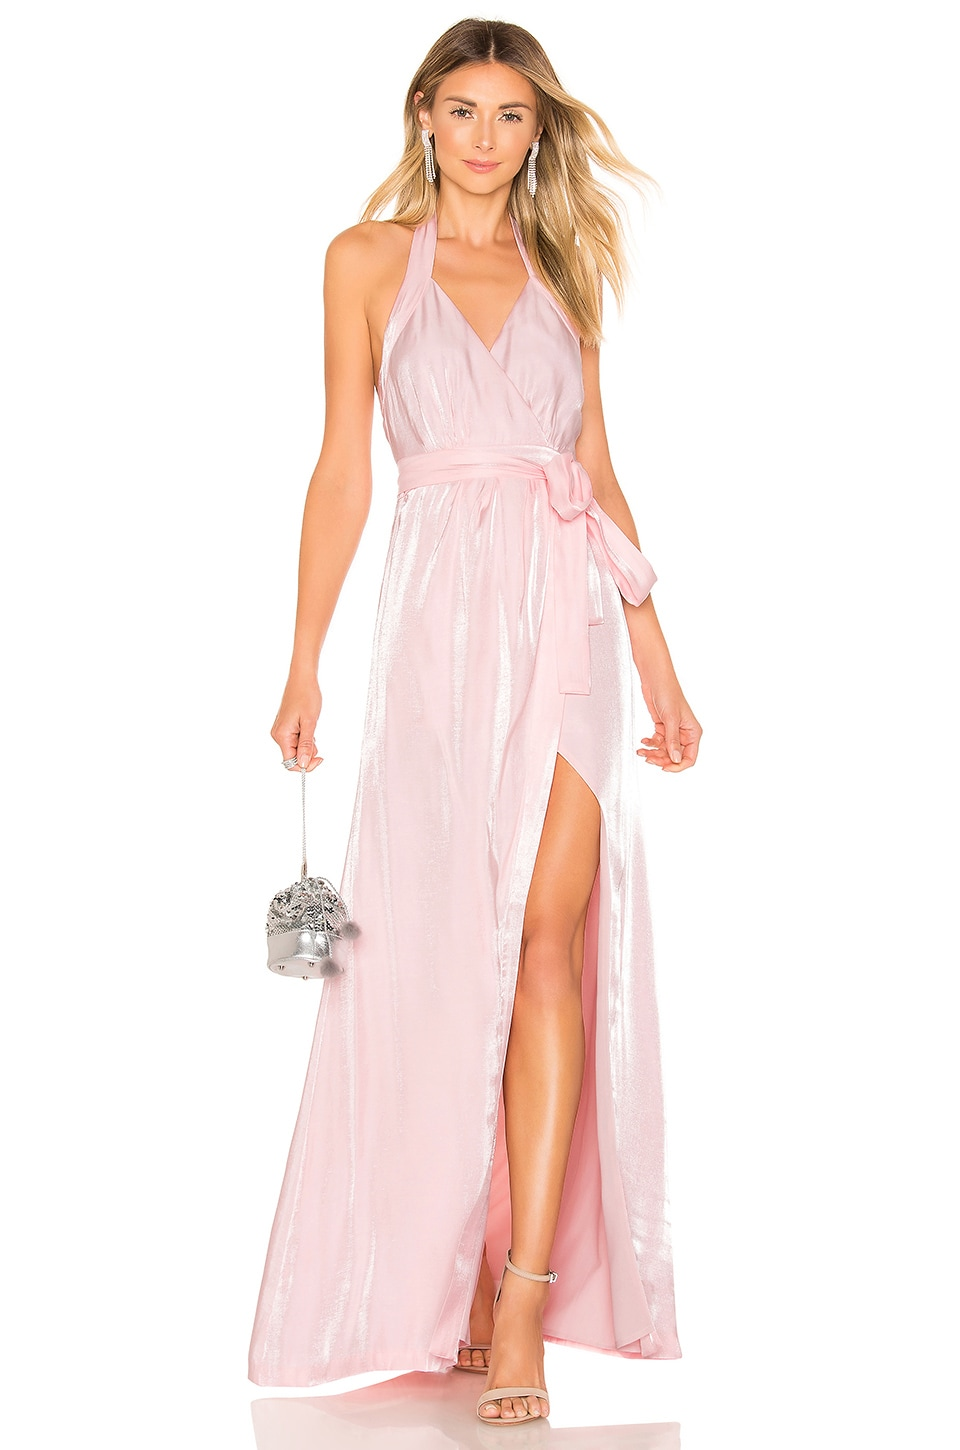 MAJORELLE Simmons Gown in Light Pink